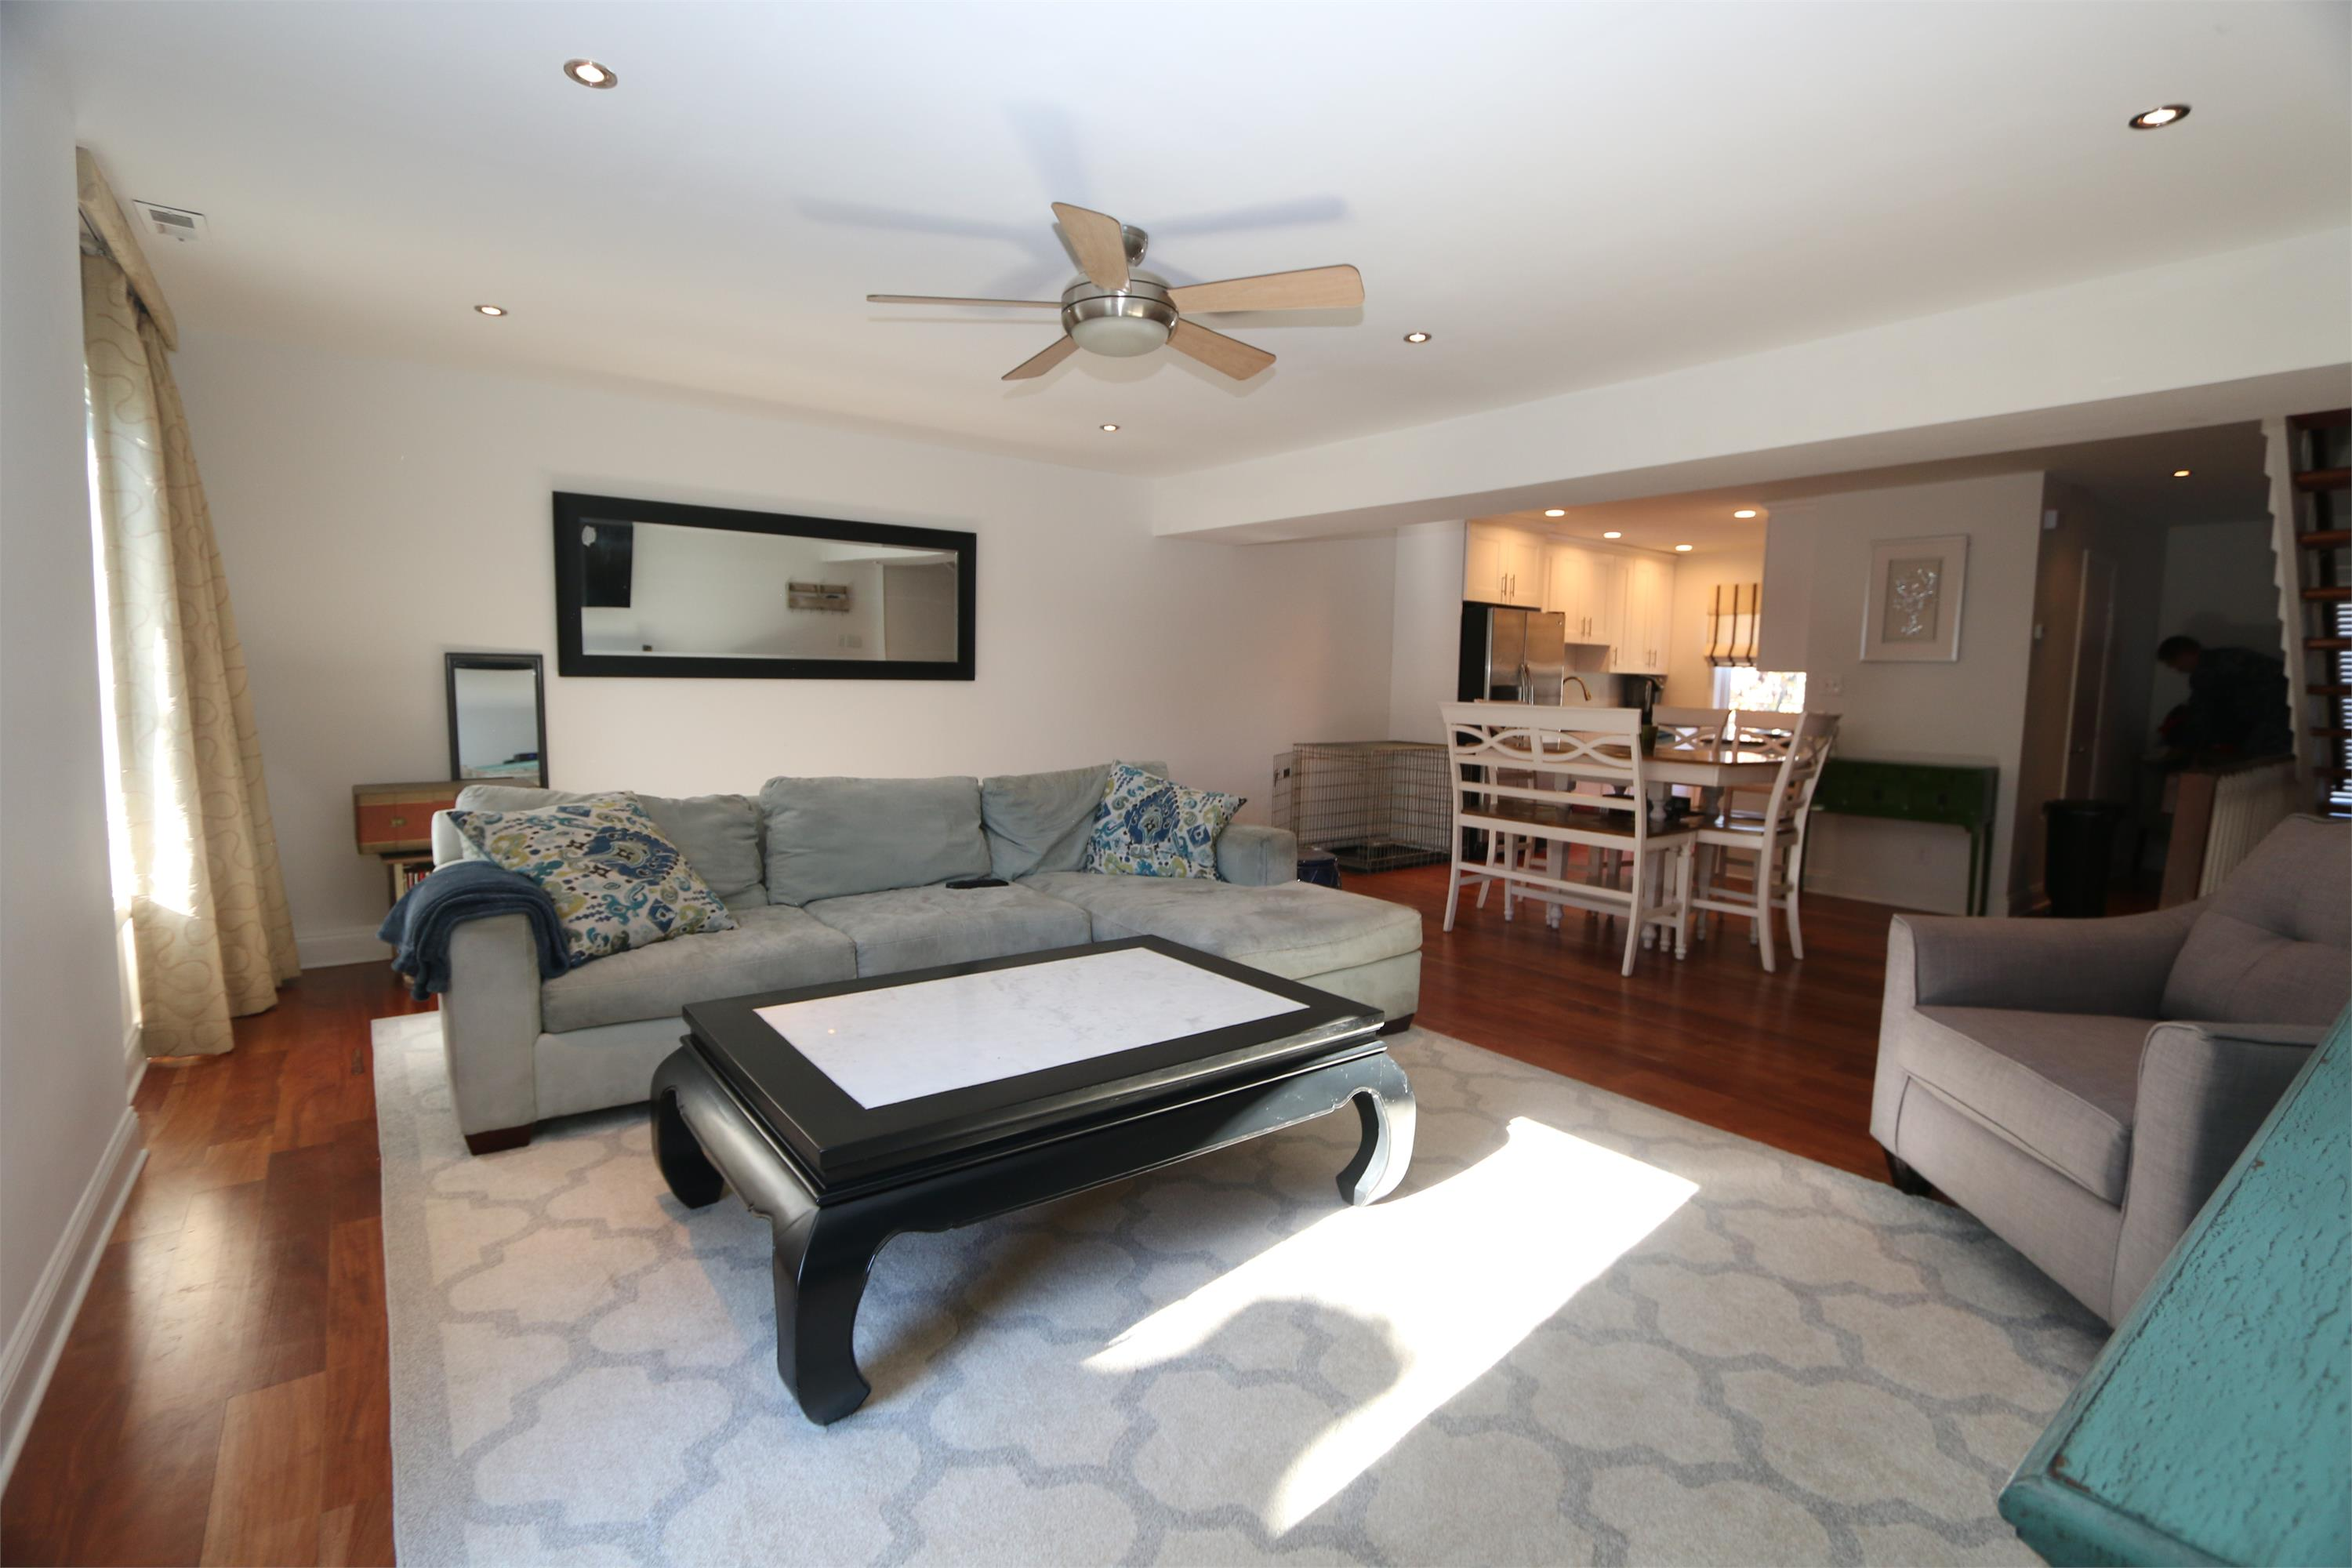 place apartments kitchen furnished reception home bedroom apartment deco decor va renovated rentals trulia office in modern copacabana rent to recently virginia blook no beach exclusive sale for ja parking the